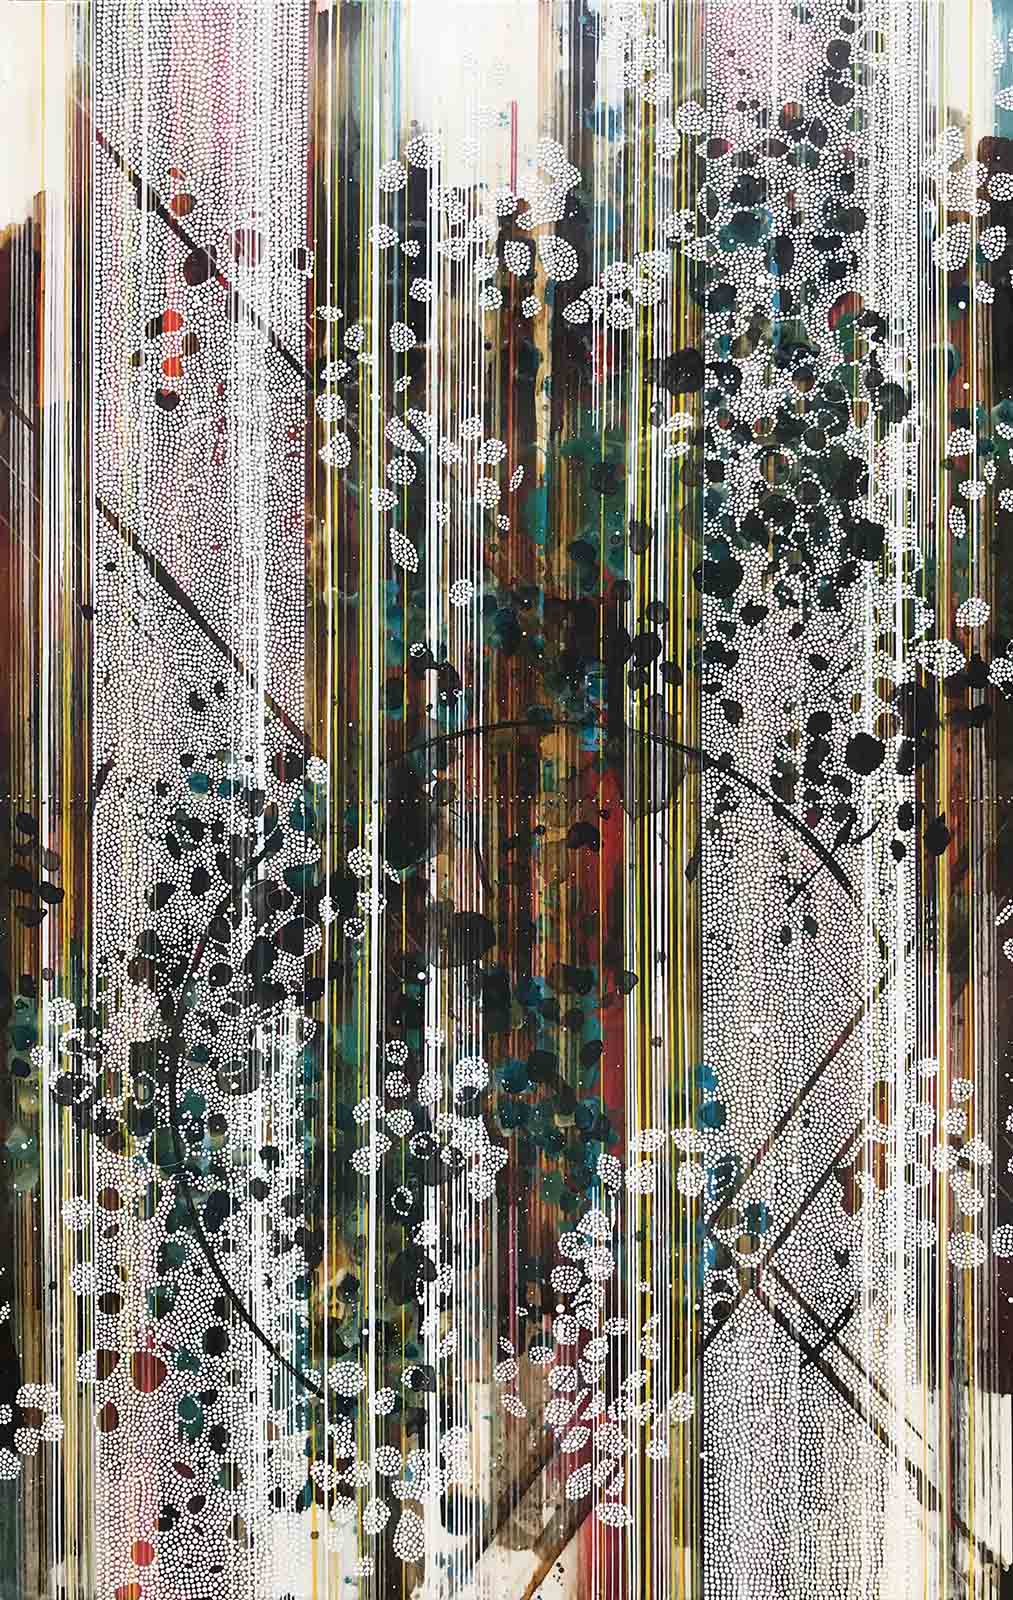 "Love is the whole thing, we are only pieces / Botanical Series / 2019 / 72""h x 46""w / Acrylic, ink, charcoal, graphite, pen, paper and brass on panel / Unframed with bare wood edge / Title from: Rumi"